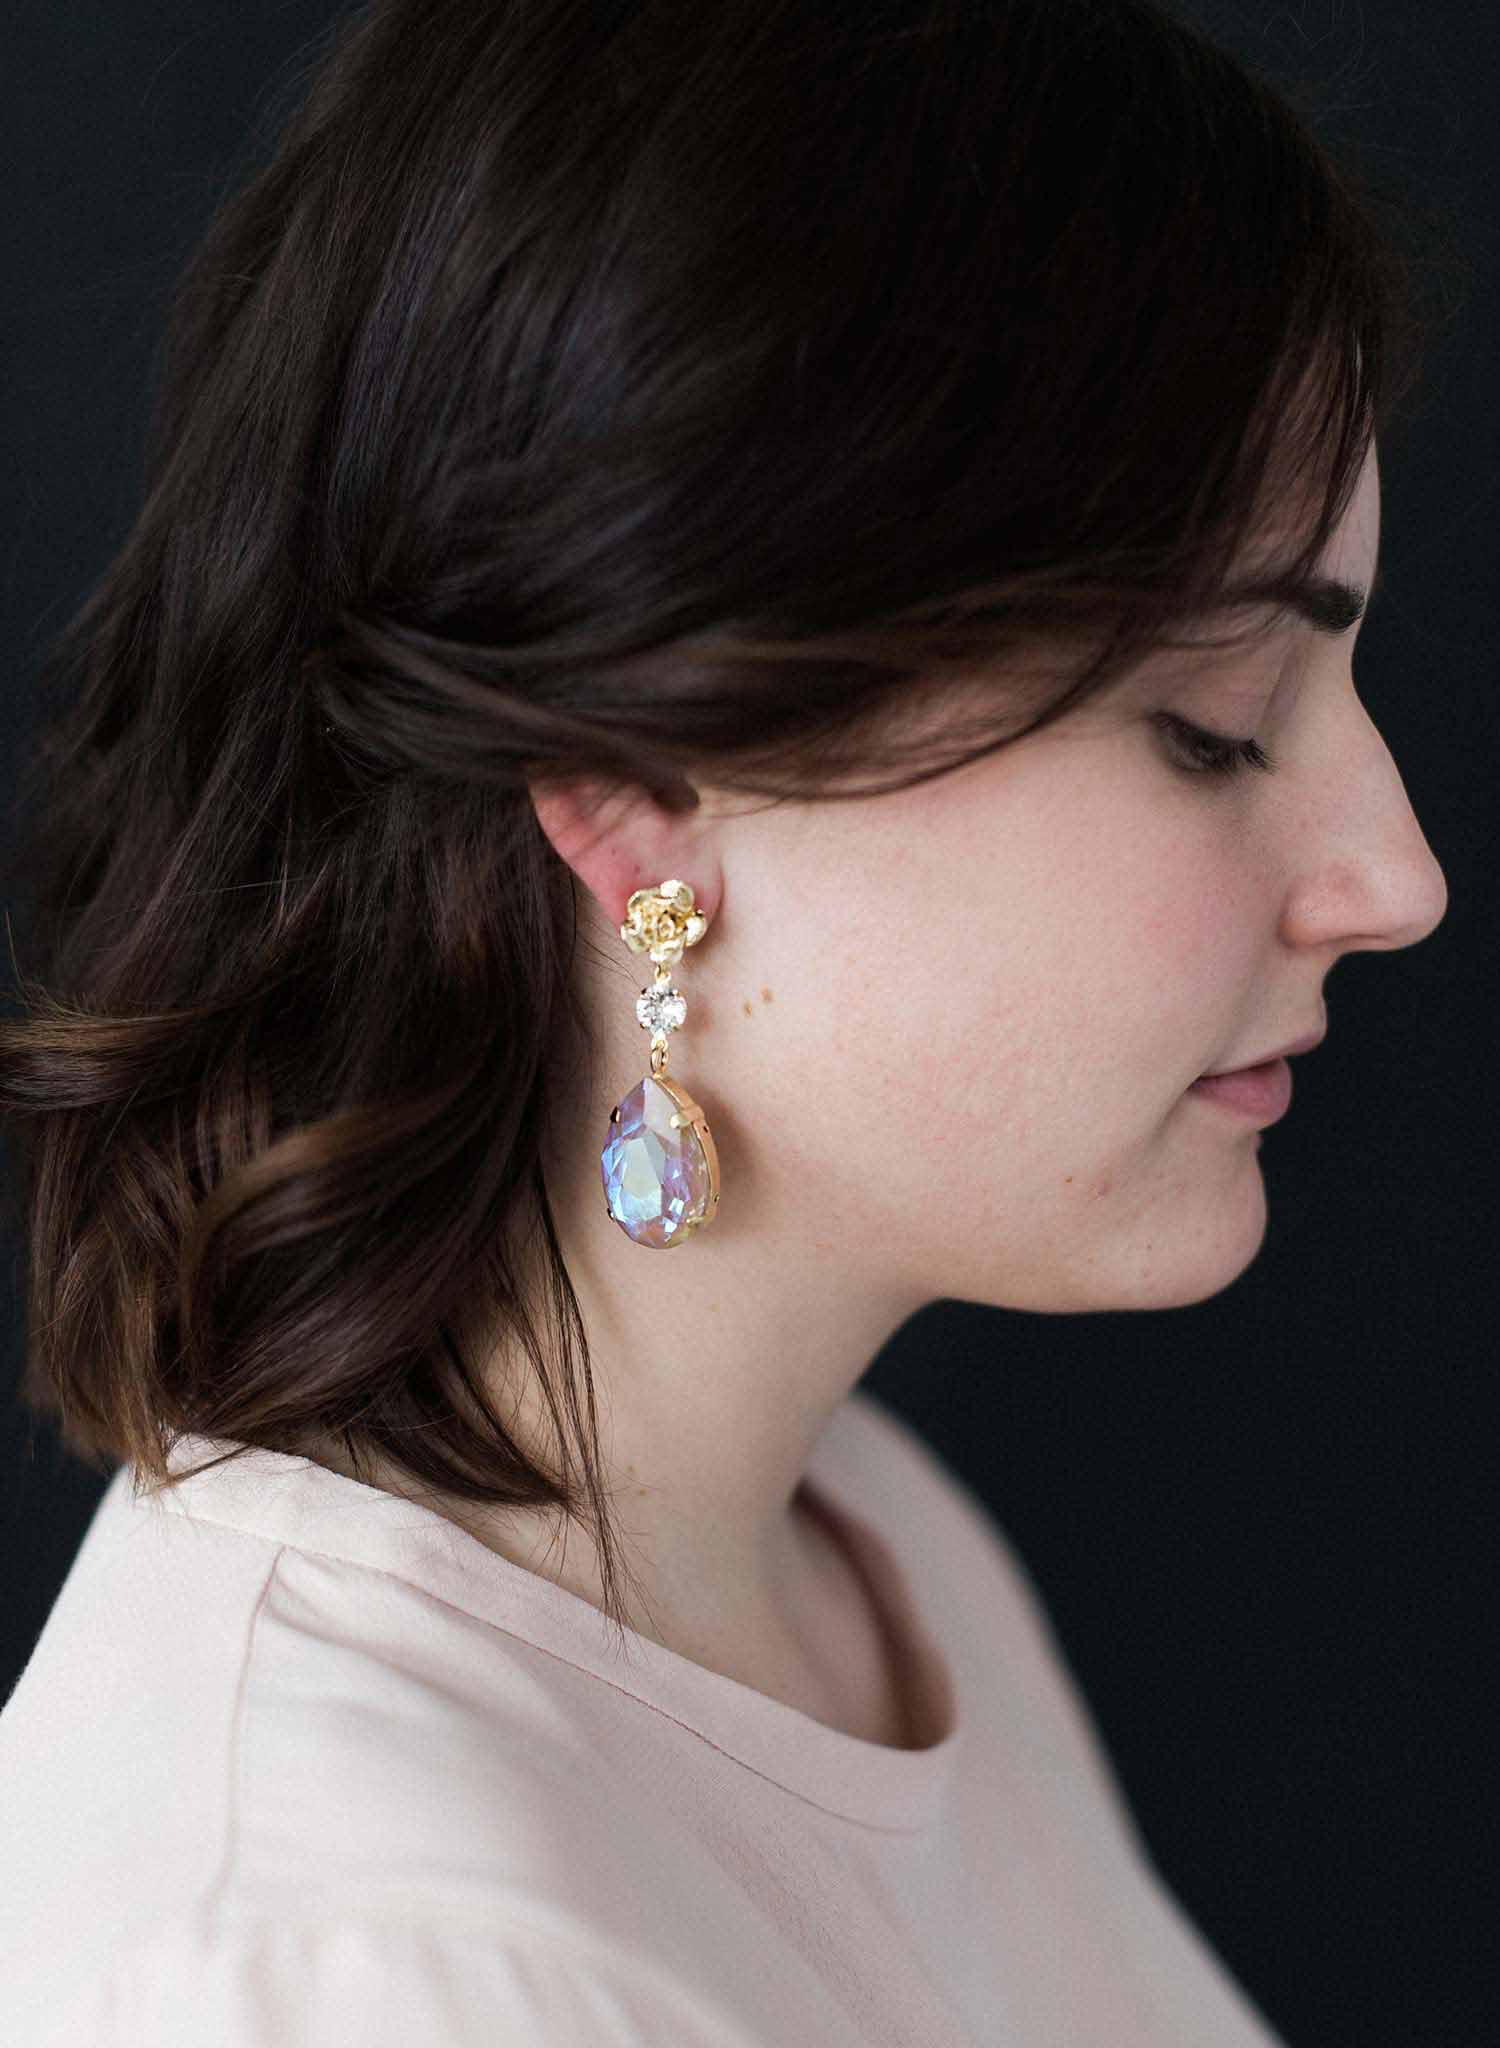 Oversized pear and rose bud earrings  - Style #9016